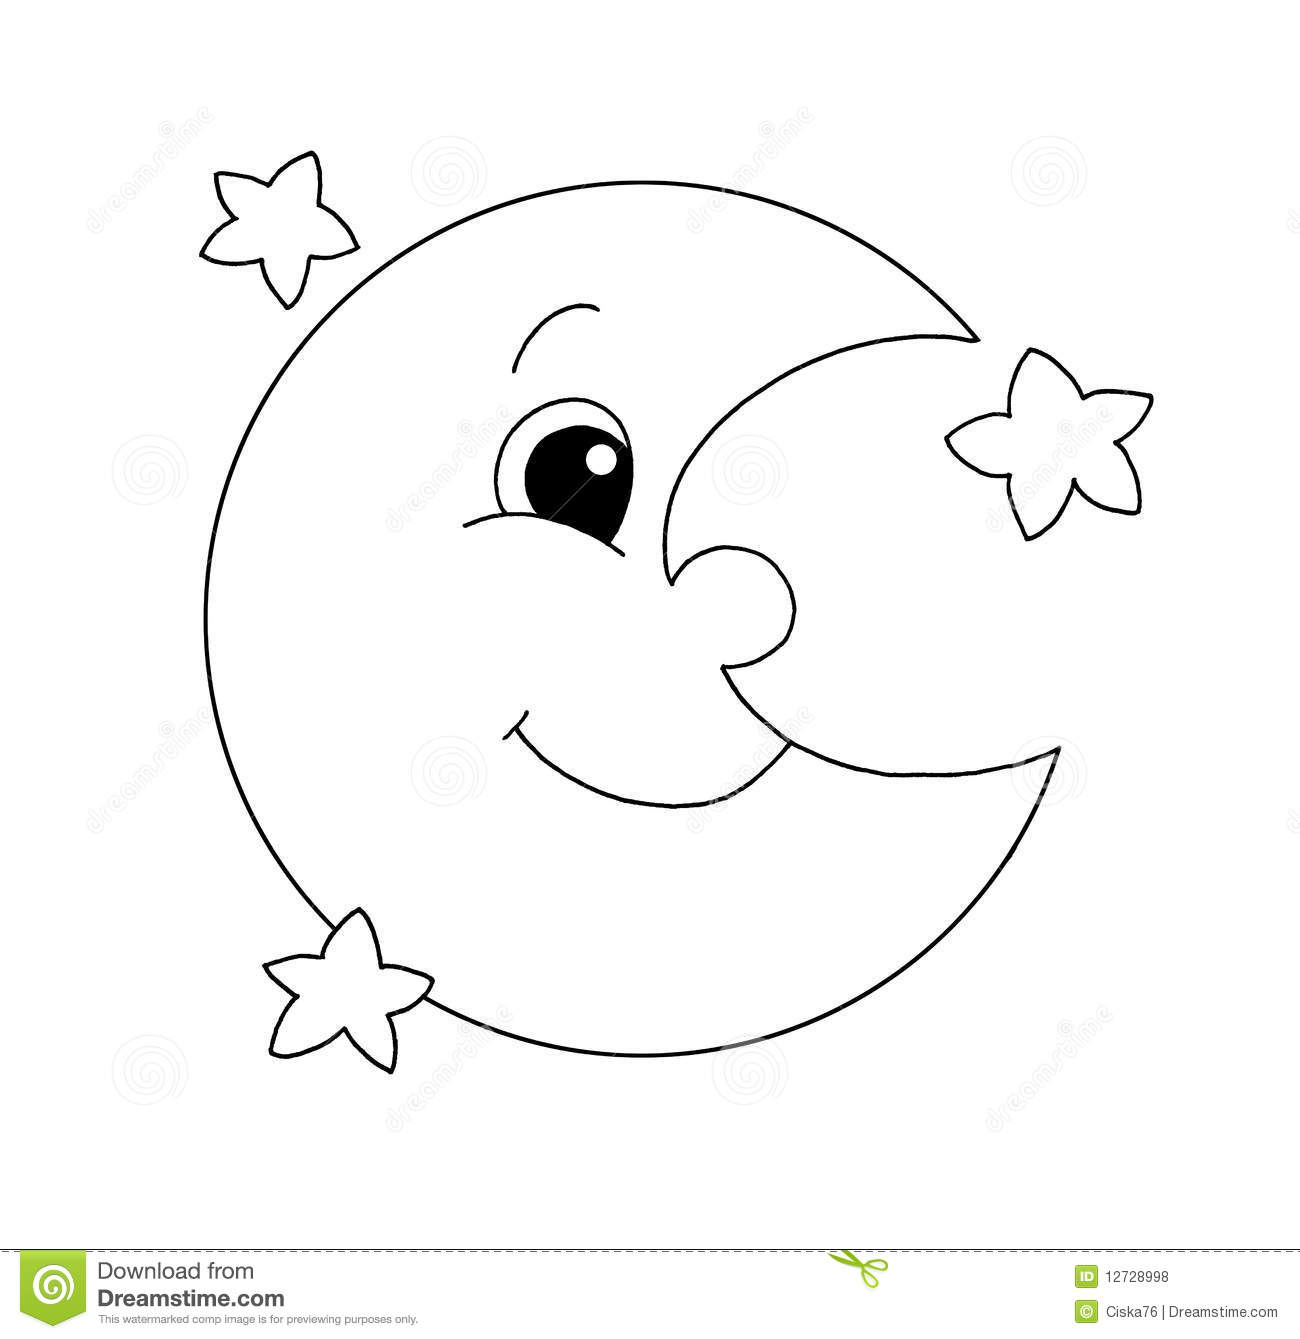 Sleeping moon clipart black and white free graphic freeuse download Free Moon Clipart Black And White, Download Free Clip Art ... graphic freeuse download